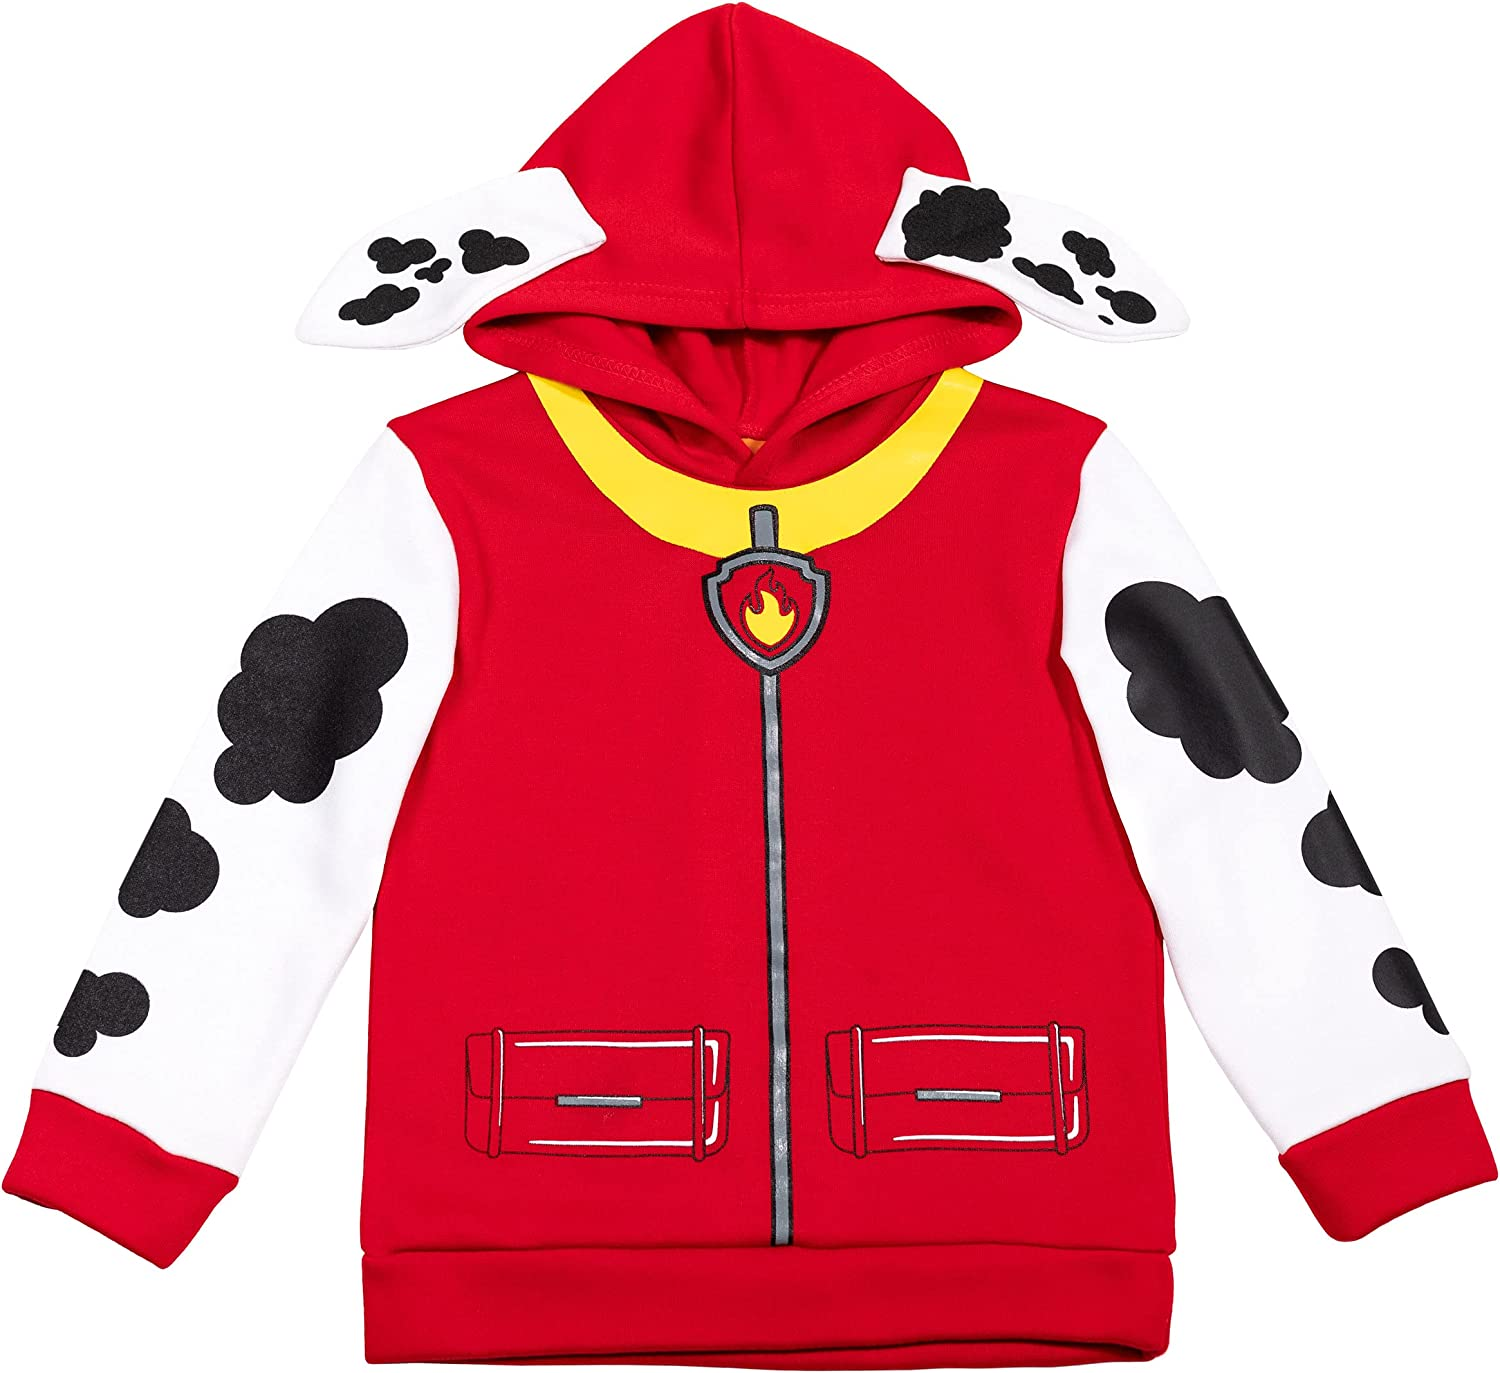 Nickelodeon Paw Patrol Marshall Toddler/Little Boys Fleece Cosplay Pullover Hoodie: Clothing, Shoes & Jewelry